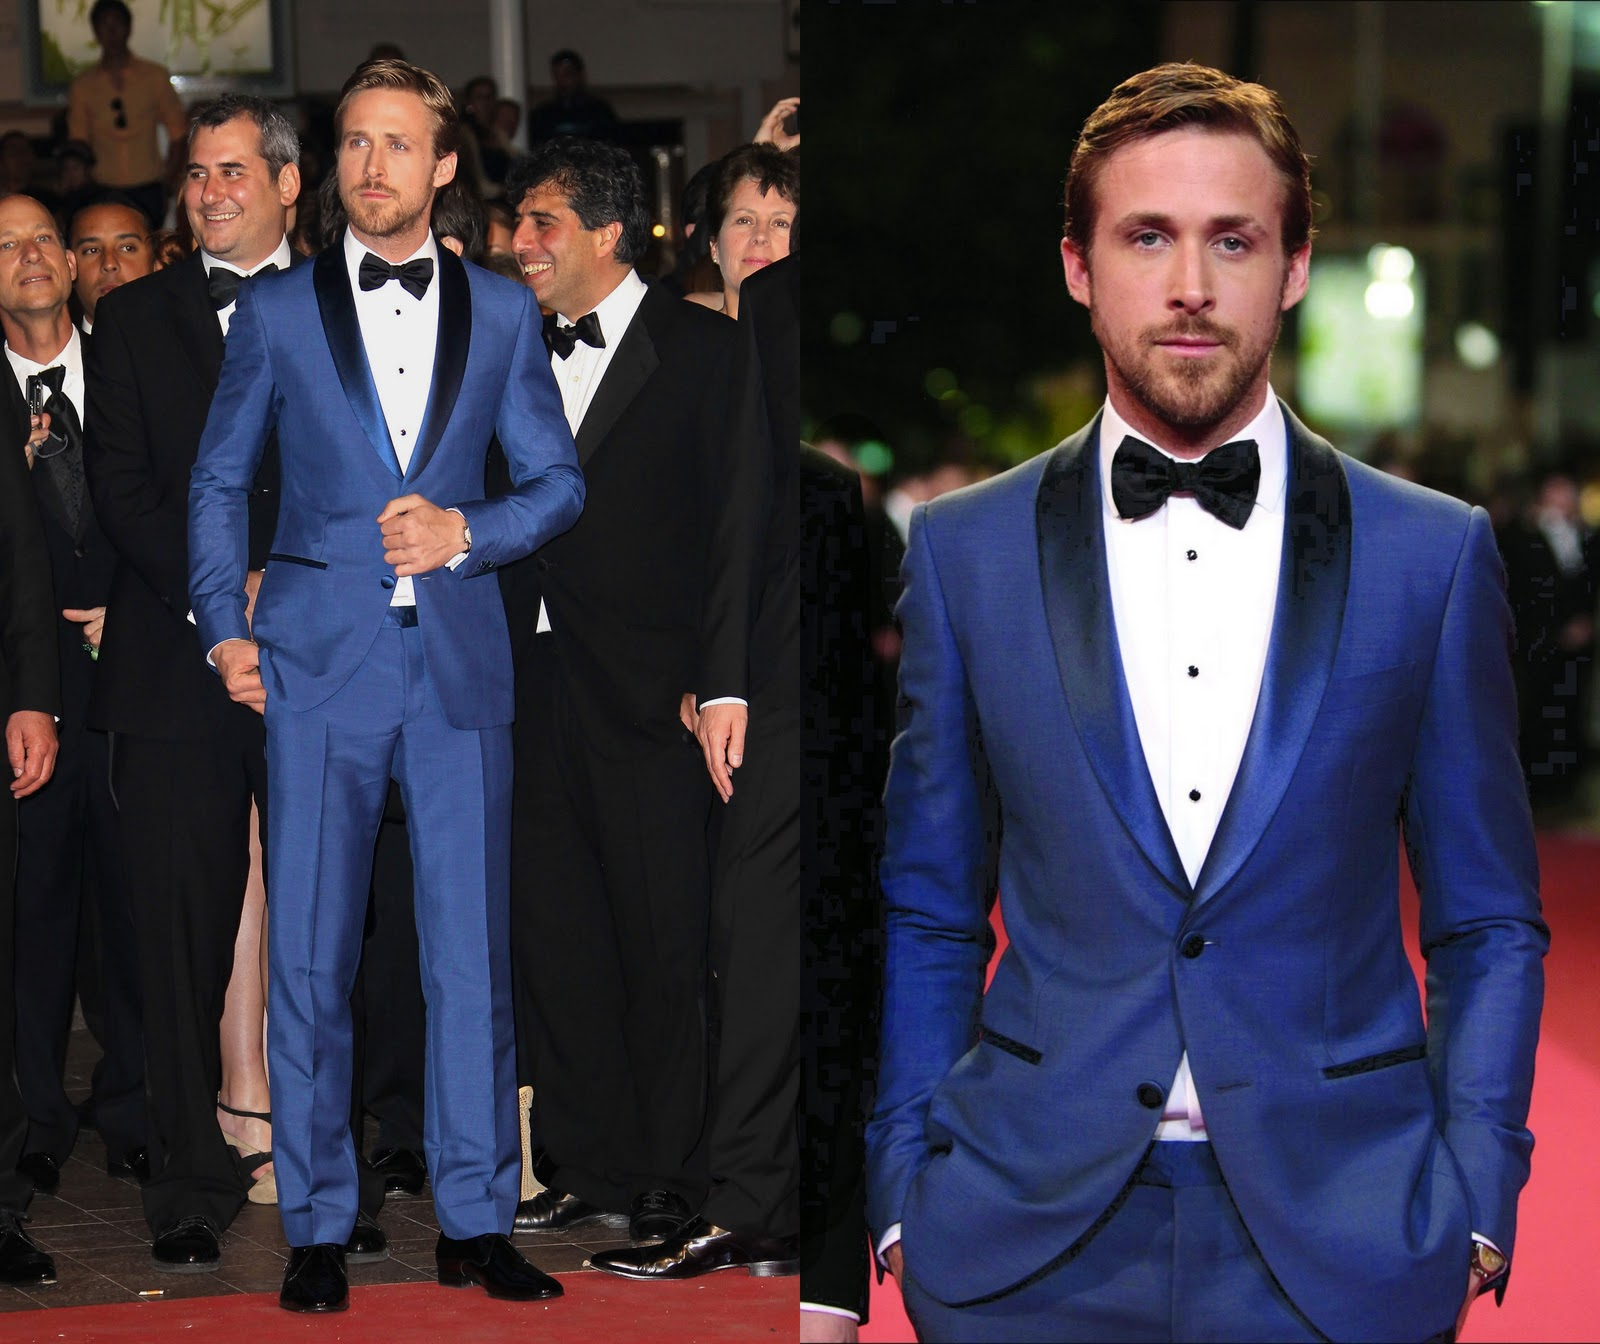 Ryan Gosling Suit (in salvatore ferragamo suit)